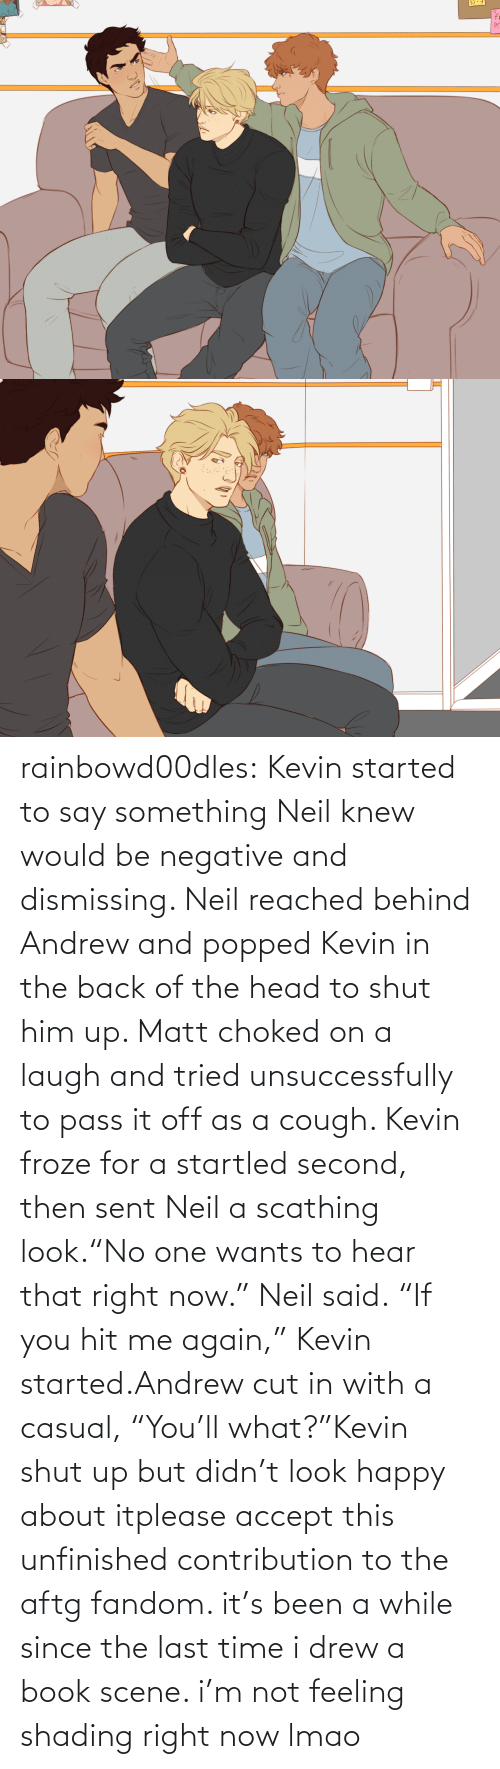 "hit: rainbowd00dles:  Kevin started to say something Neil knew would be negative and dismissing. Neil reached behind Andrew and popped Kevin in the back of the head to shut him up. Matt choked on a laugh and tried unsuccessfully to pass it off as a cough. Kevin froze for a startled second, then sent Neil a scathing look.""No one wants to hear that right now."" Neil said. ""If you hit me again,"" Kevin started.Andrew cut in with a casual, ""You'll what?""Kevin shut up but didn't look happy about itplease accept this unfinished contribution to the aftg fandom. it's been a while since the last time i drew a book scene. i'm not feeling shading right now lmao"